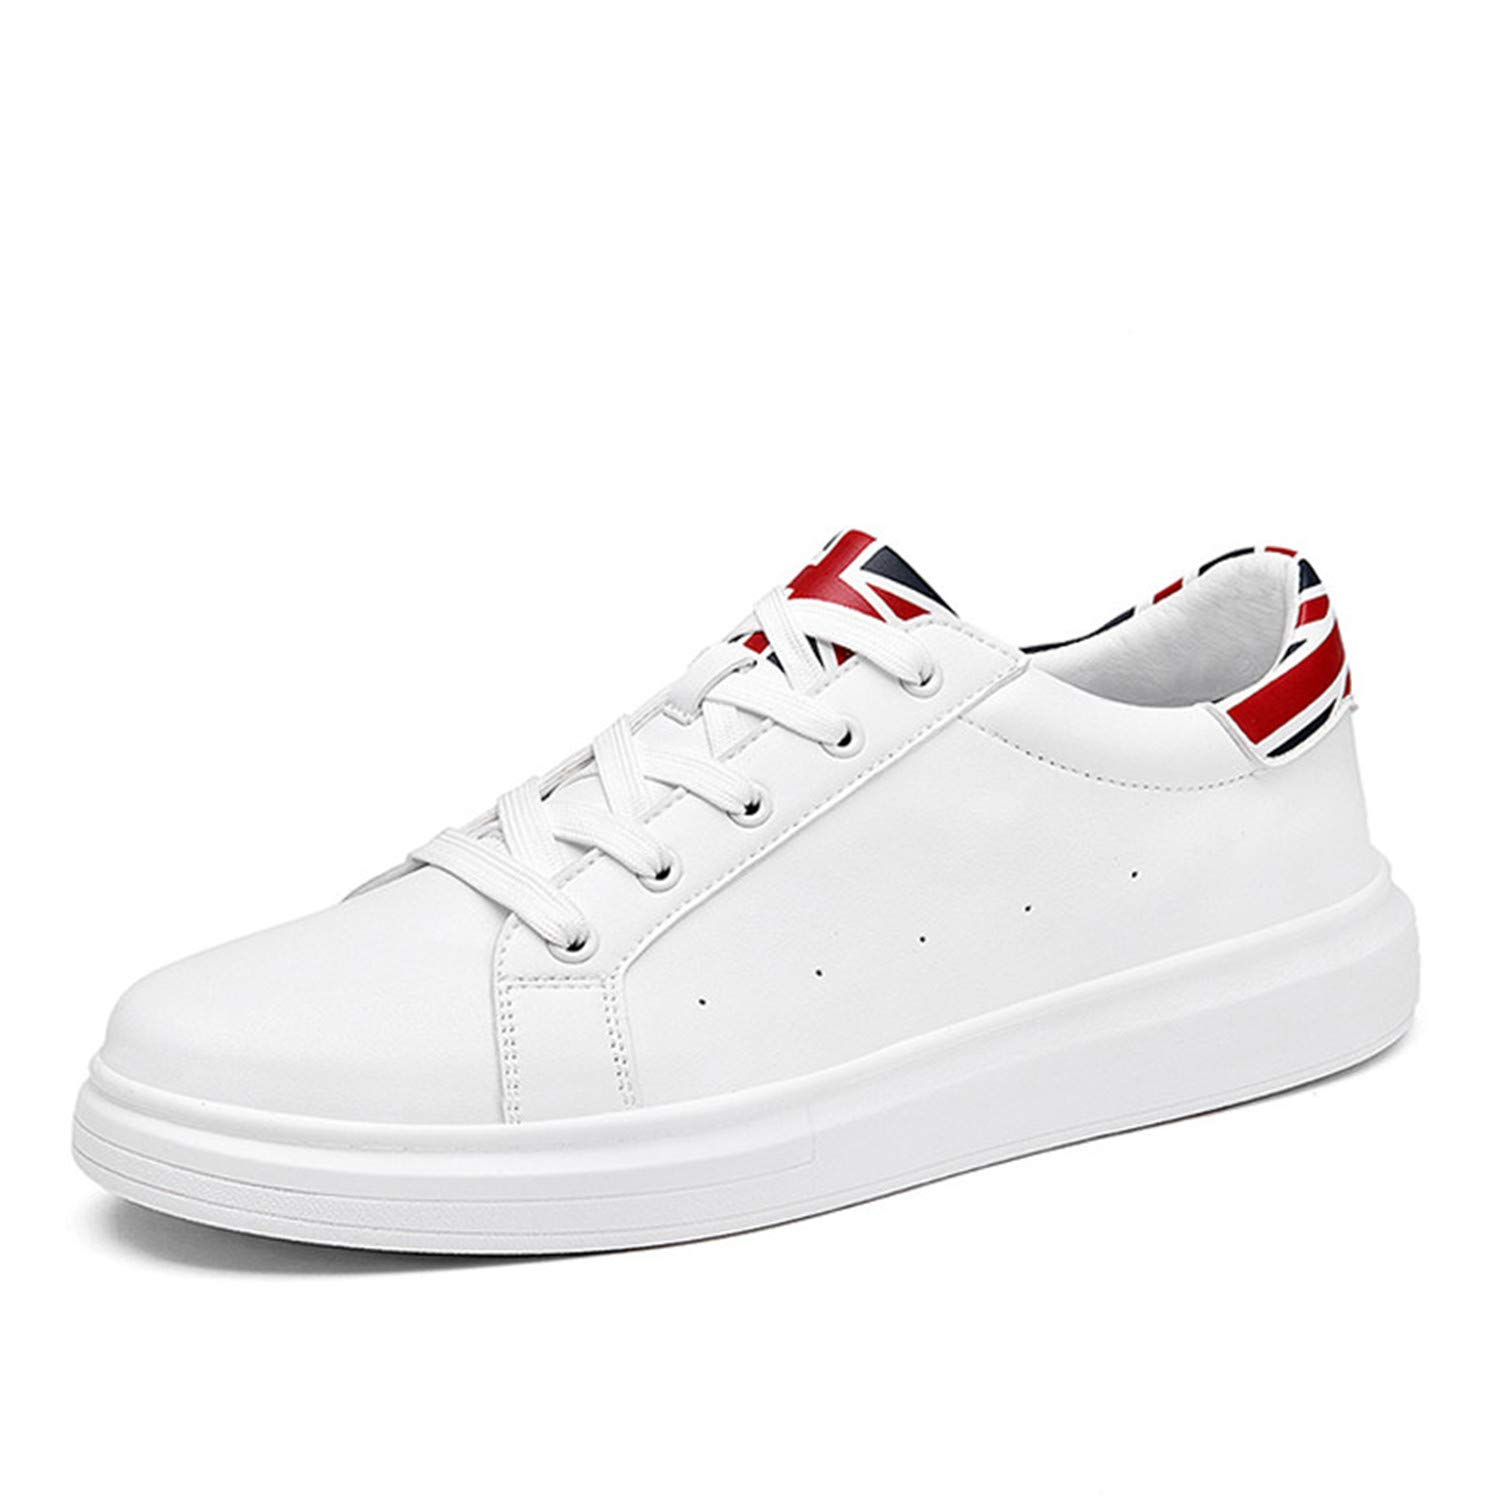 Amazon.com | Thadensama Designer Mens Casual Shoes Summer Breathable Fashion White Sneakers Men Leather Shoes Loafers Male Tenis | Shoes